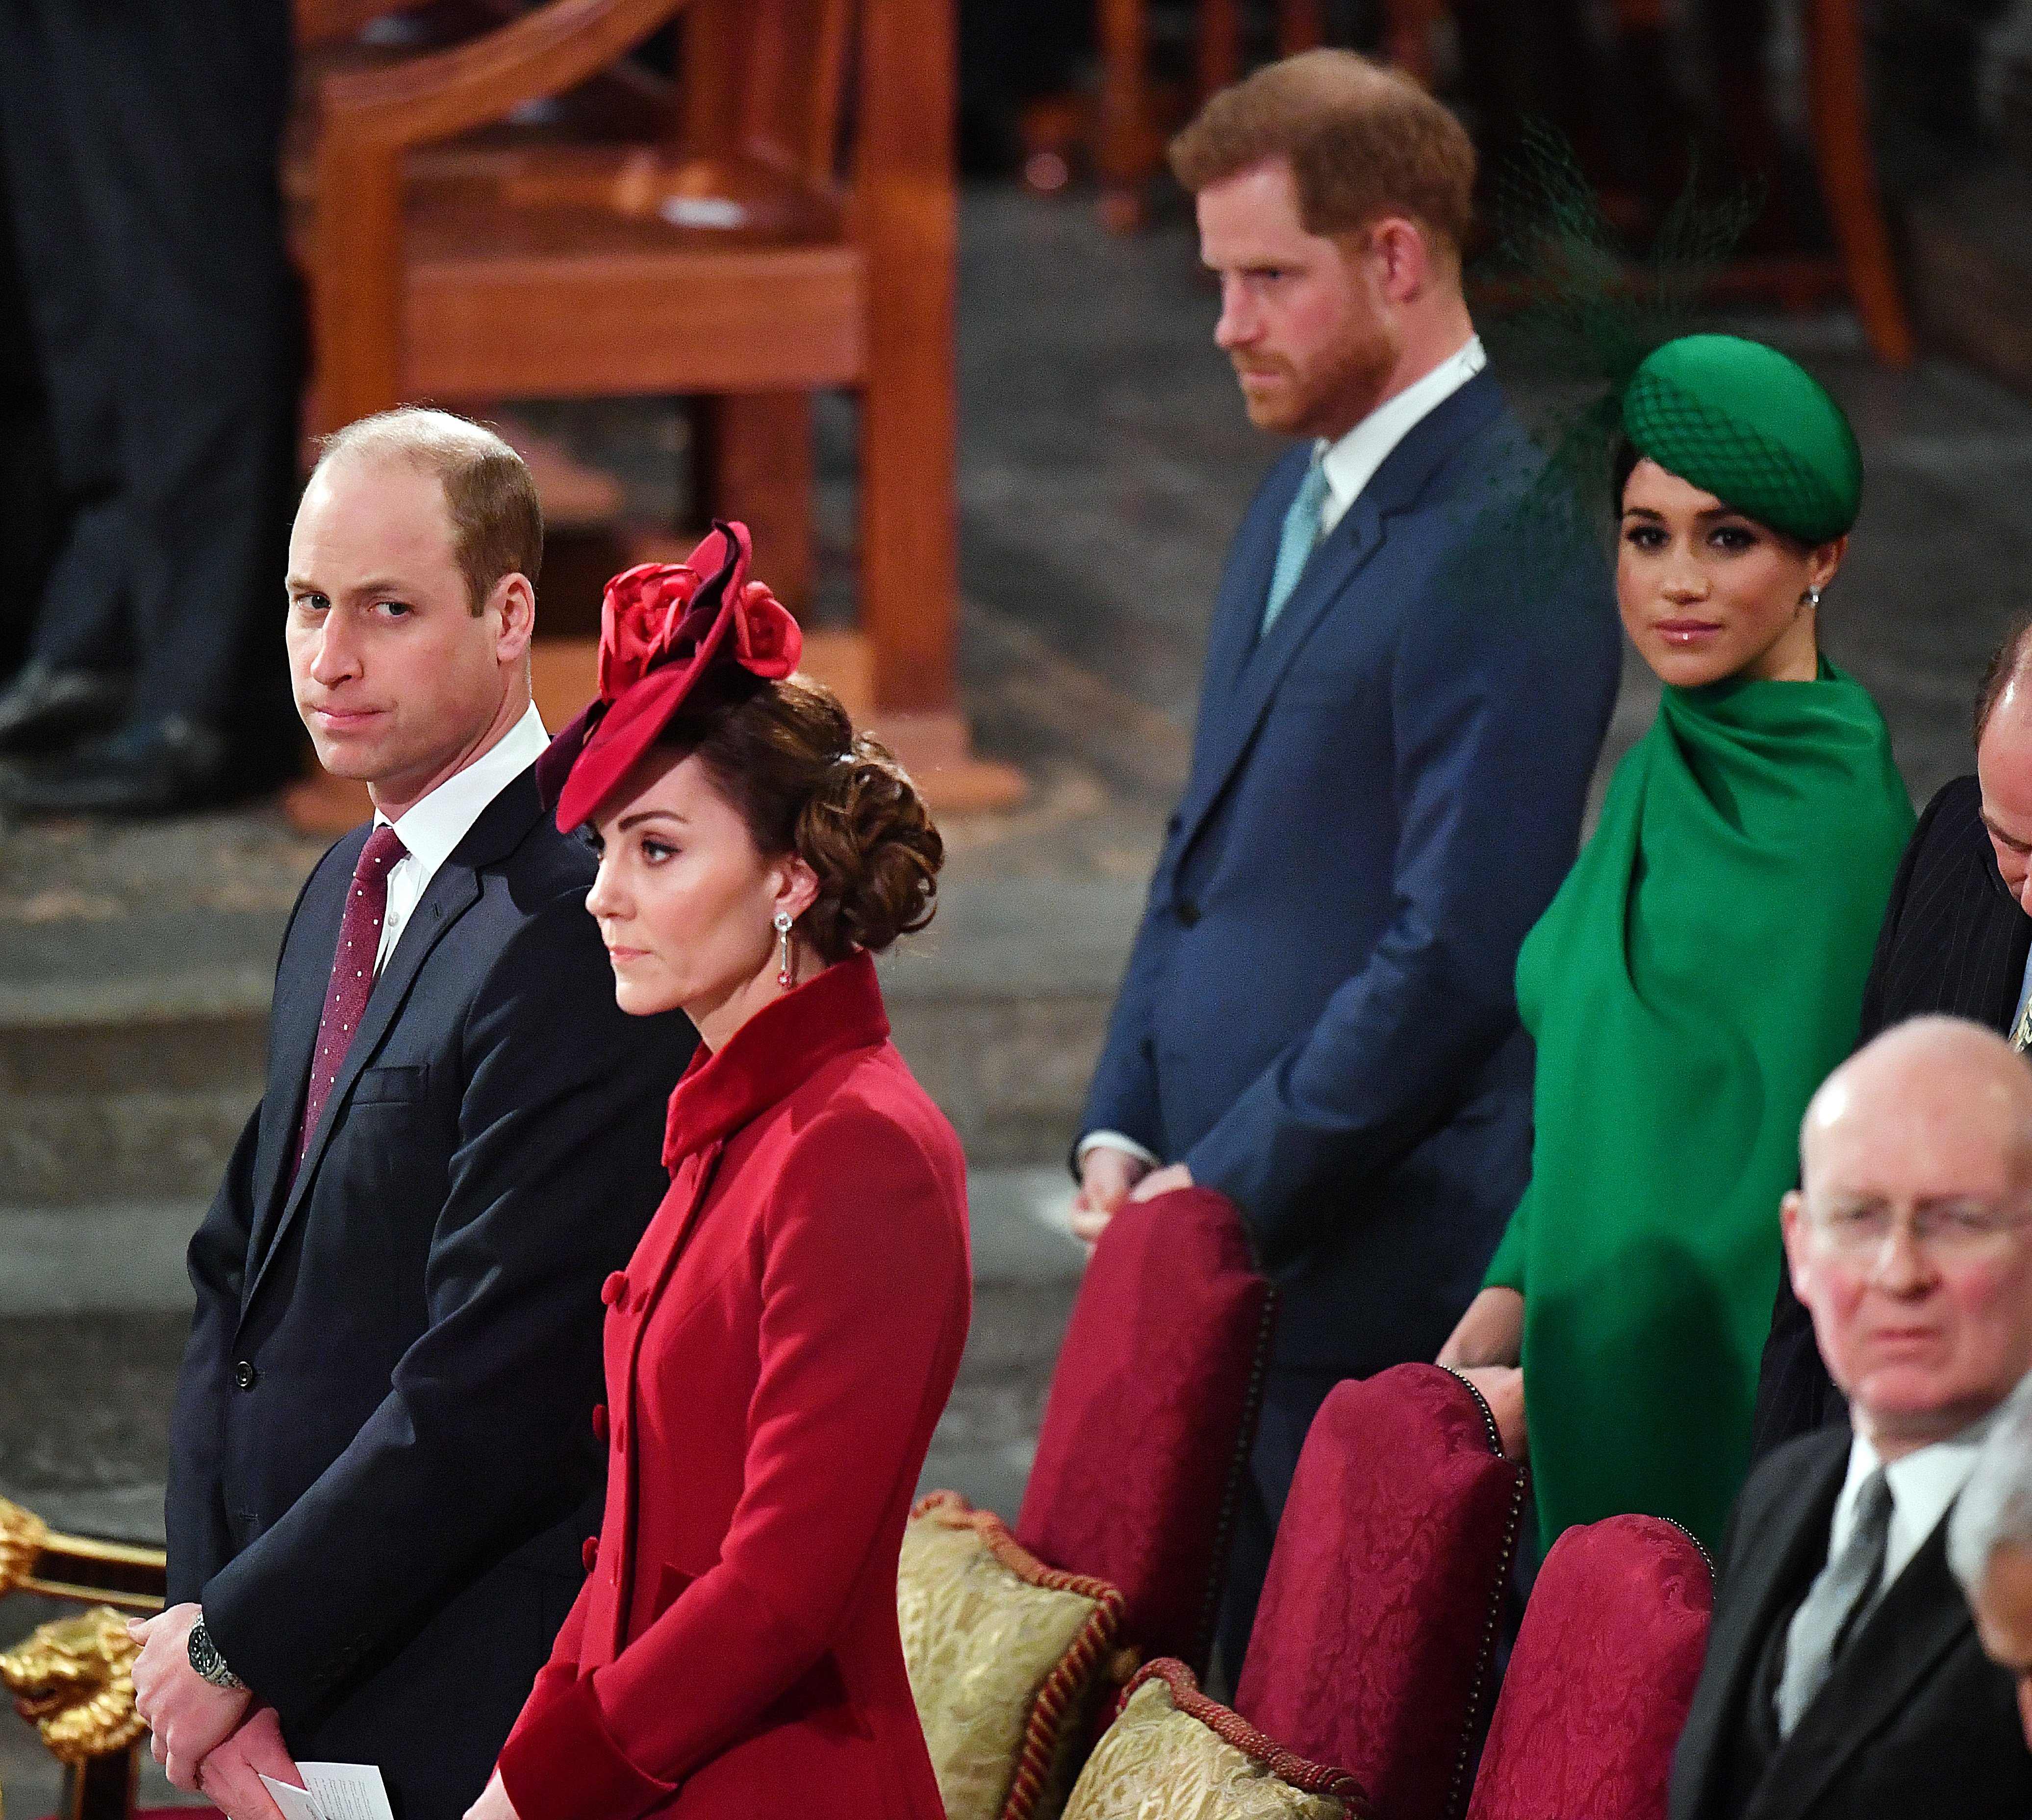 Prince William, Kate Middleton, Prince Harry, and Meghan Markle attend the Commonwealth Day Service 2020 on March 9, 2020 | Photo: Getty Images